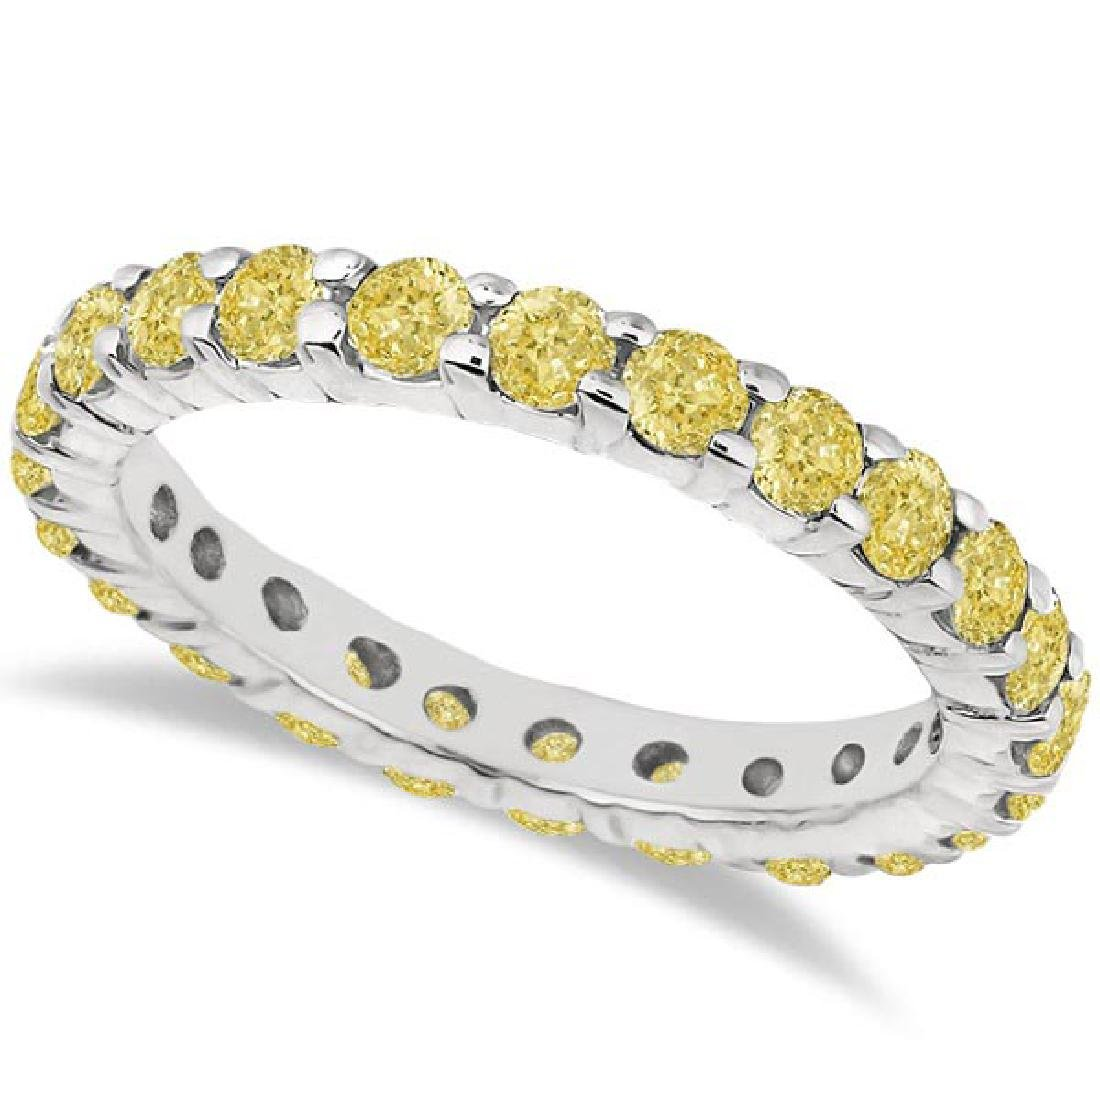 Fancy Yellow Canary Diamond Eternity Ring Band 14k Whit